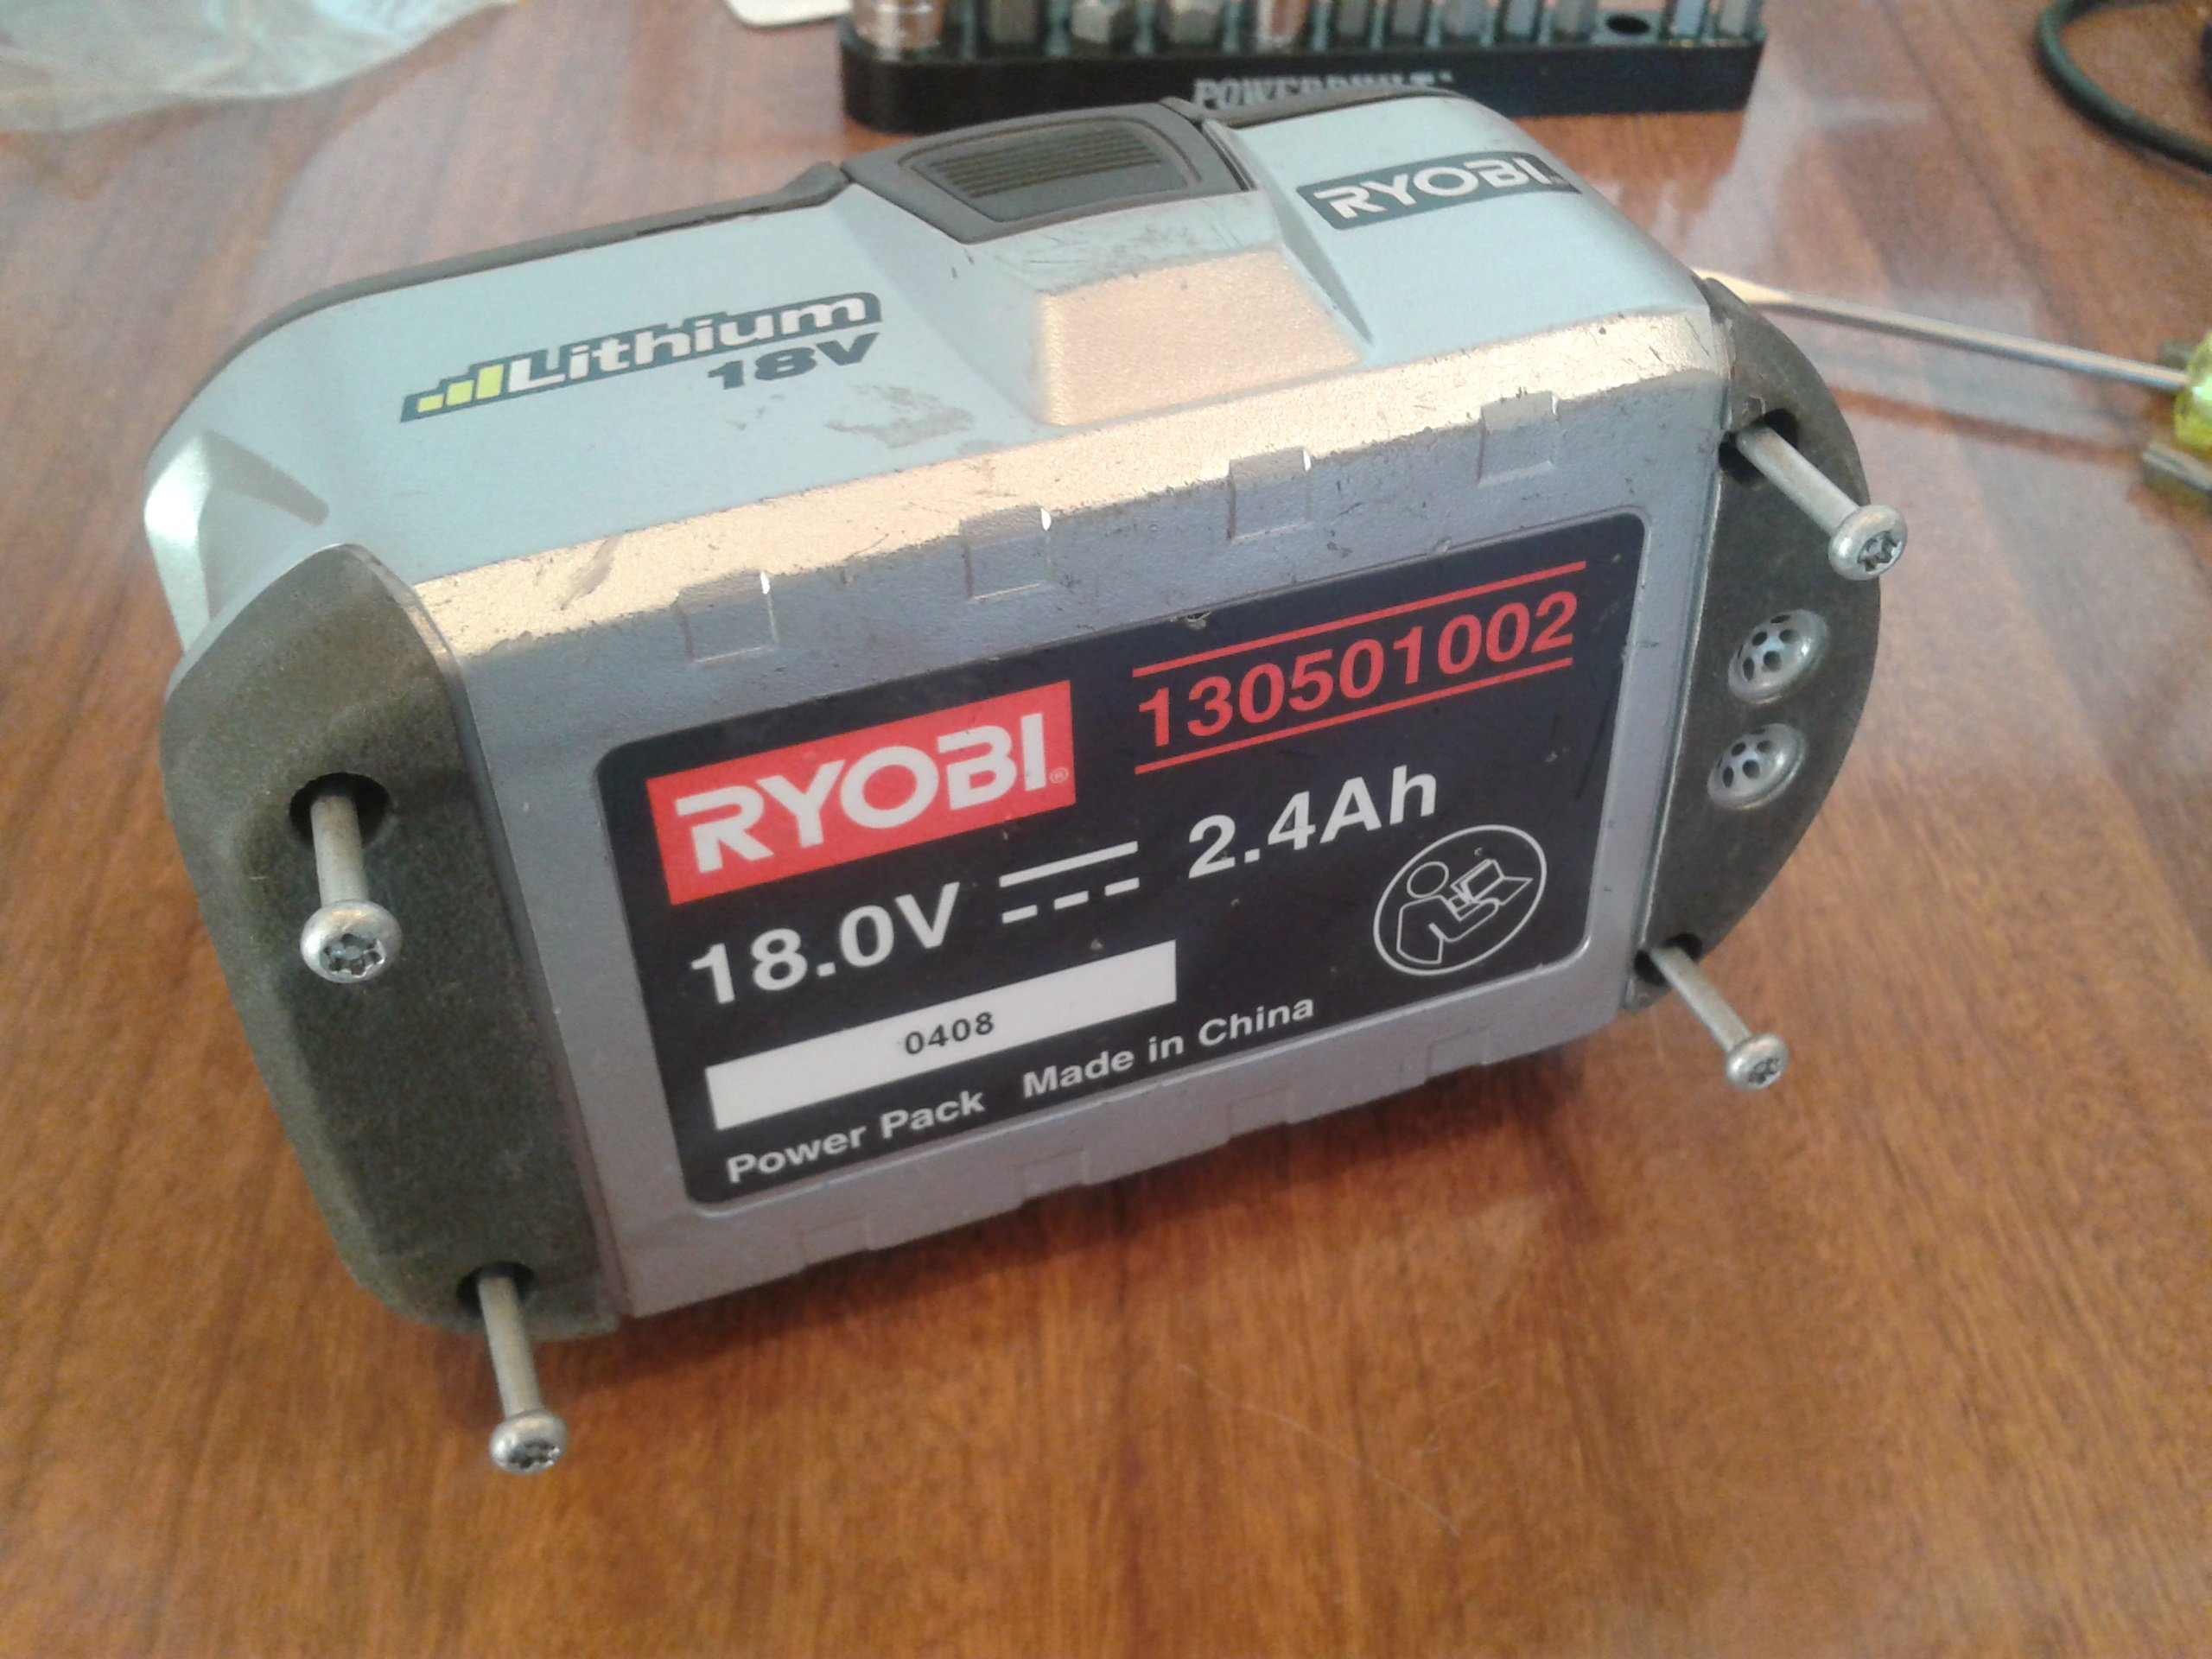 Cell Re-balance of Ryobi One+ 18V Li-ion Battery (130501002 ... on 12v solar panel wiring diagram, projector wiring diagram, radio control wiring diagram, usb flash drive wiring diagram, buzzer wiring diagram, camera wiring diagram, speaker wiring diagram, mic wiring diagram, voltage wiring diagram, connector wiring diagram, tv antenna wiring diagram, led wiring diagram,